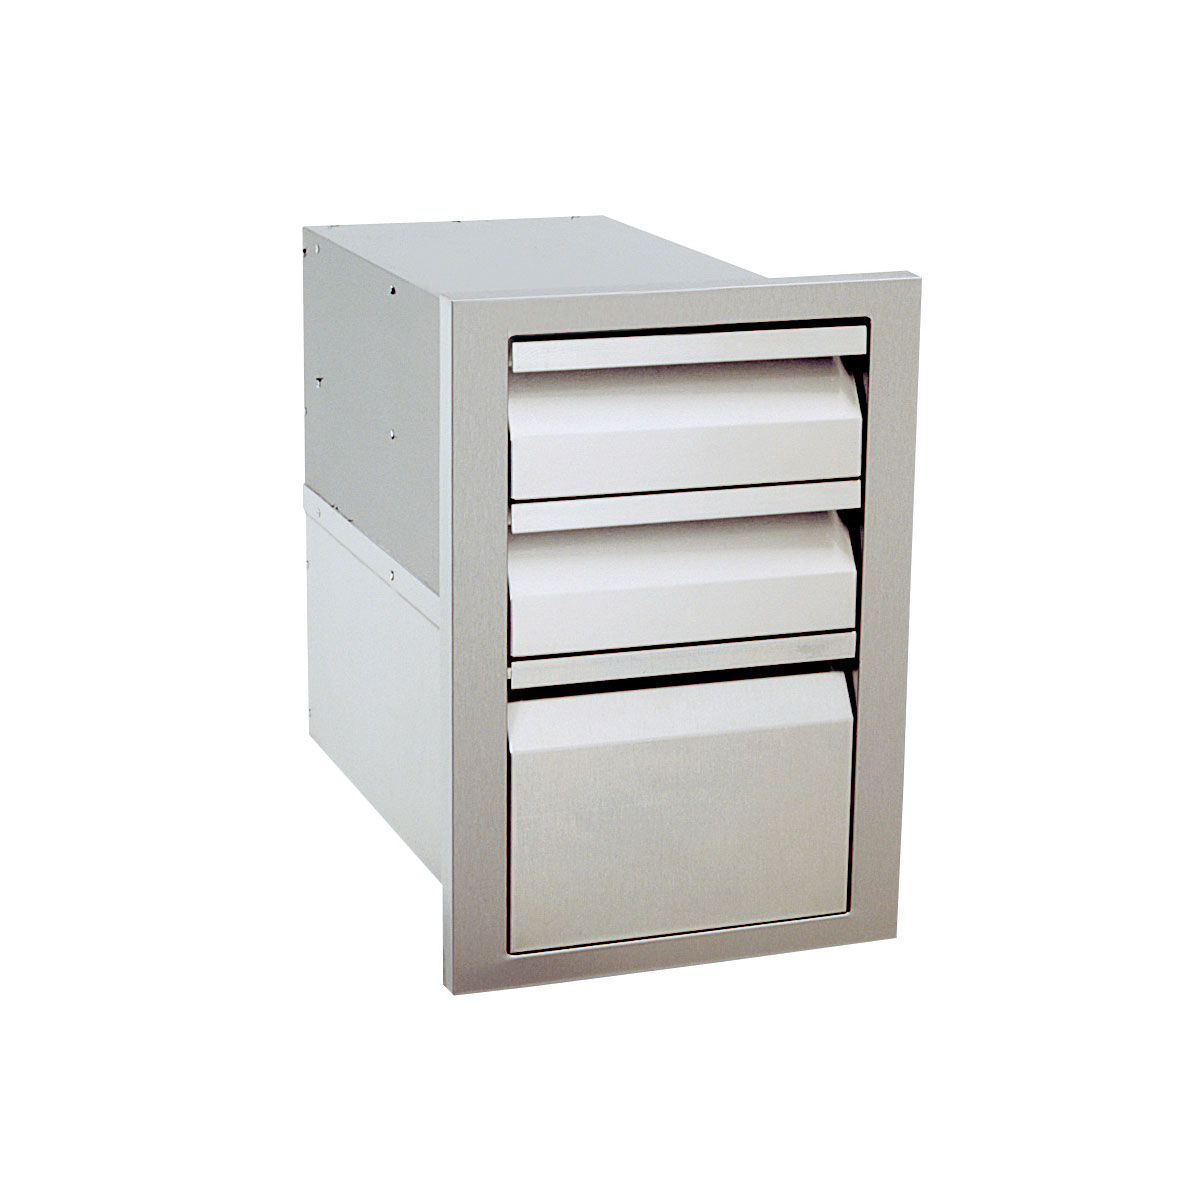 Luxor Aht Dr3 Contemporary Triple Drawer Leisure Living